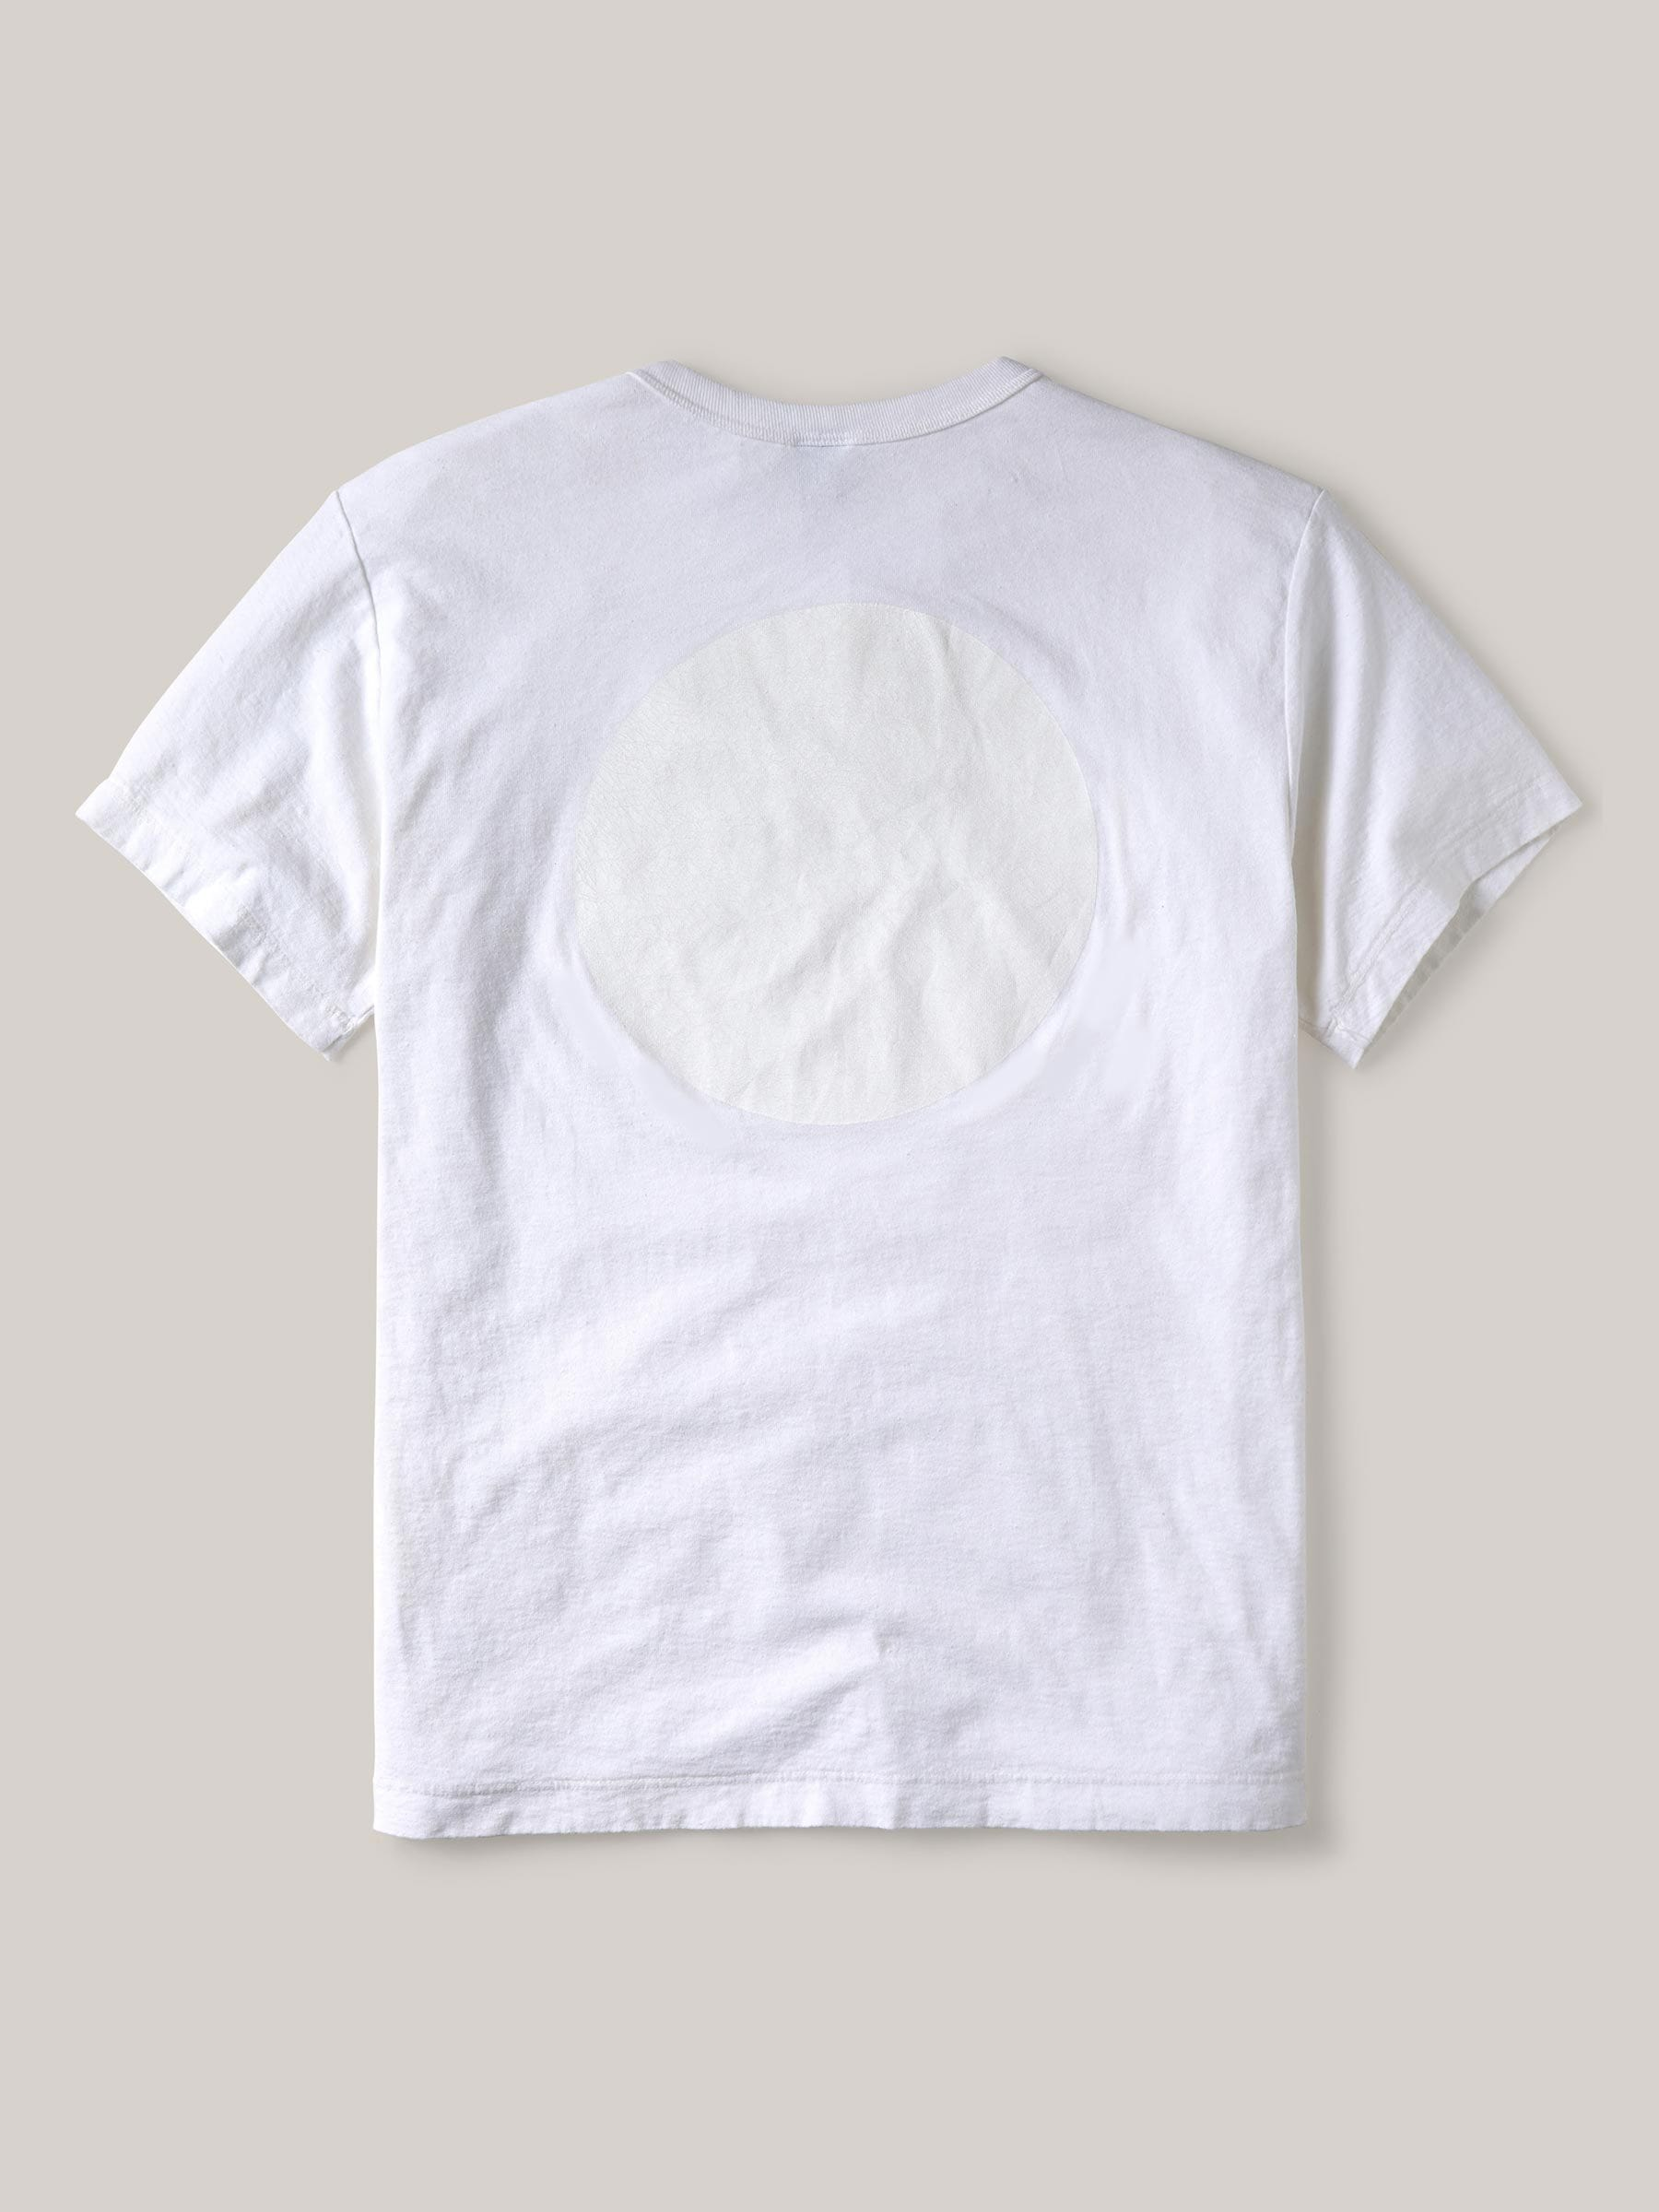 Buck Mason - Natural Fast Times Loop Cotton Vintage Tee